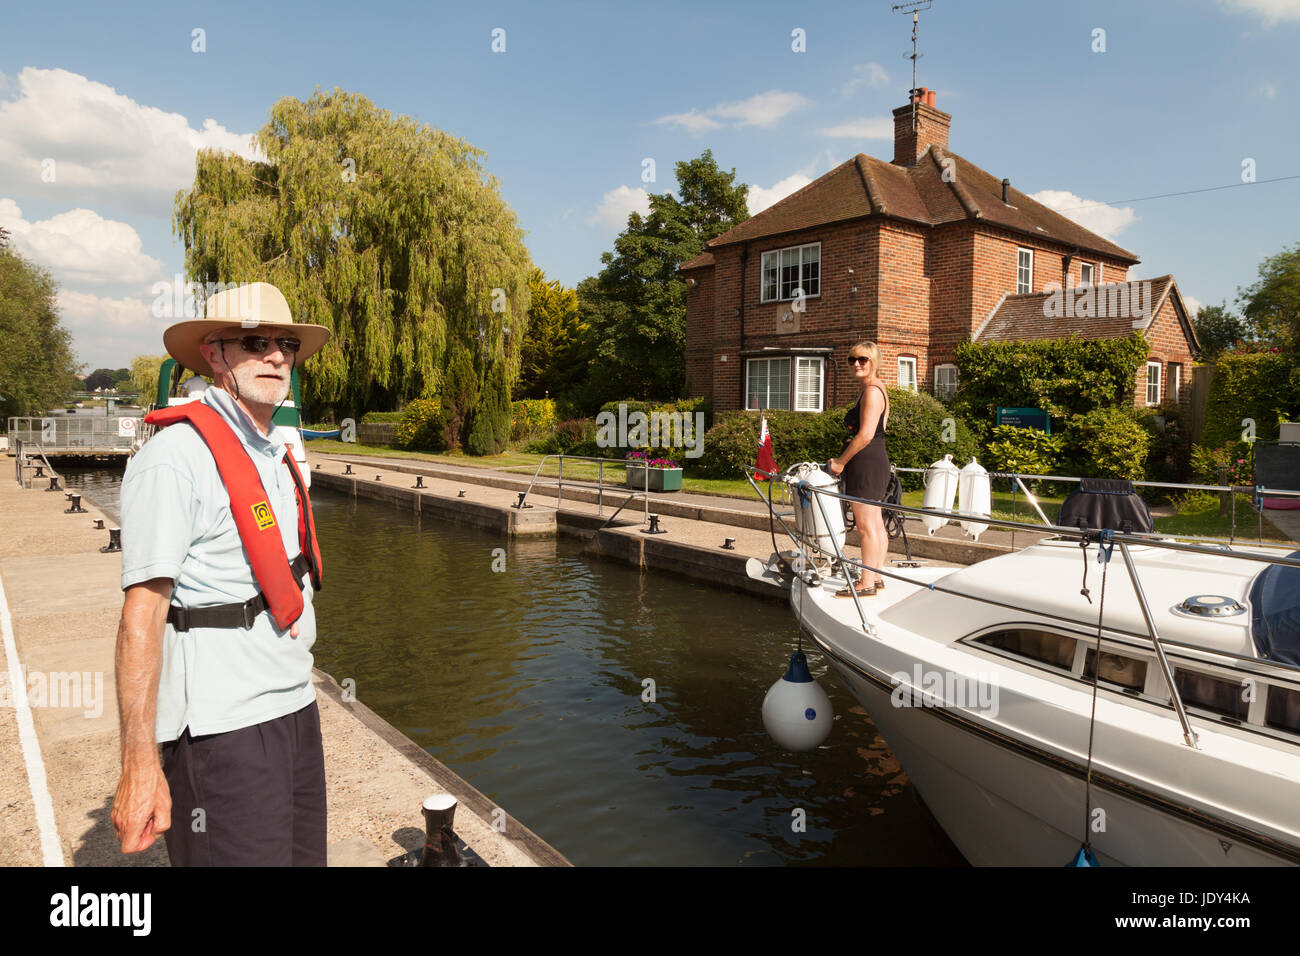 Lock keeper working at Shiplake lock on the River Thames in Oxfordshire England UK Stock Photo